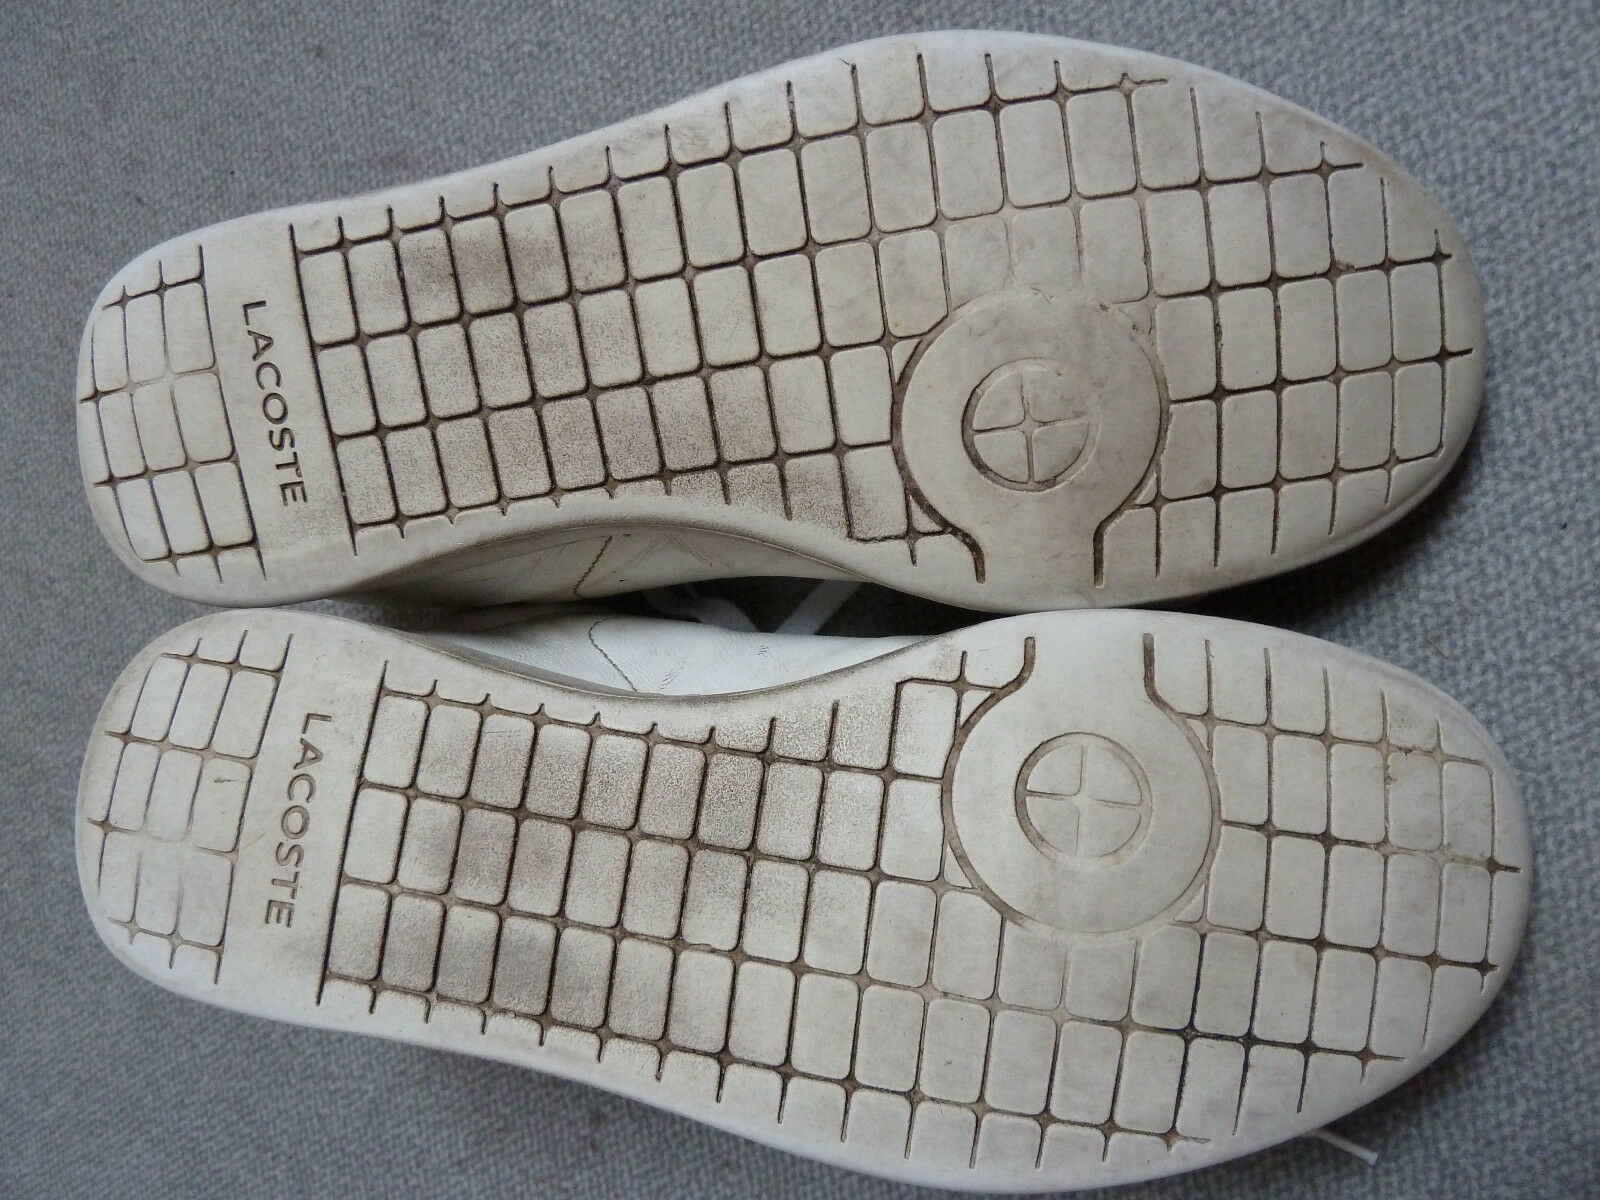 Original Lacoste Carnaby Gr. Evo LCR SPM white Gr. Carnaby 47,5 / US 13 / 31 cm - used 5aeed7